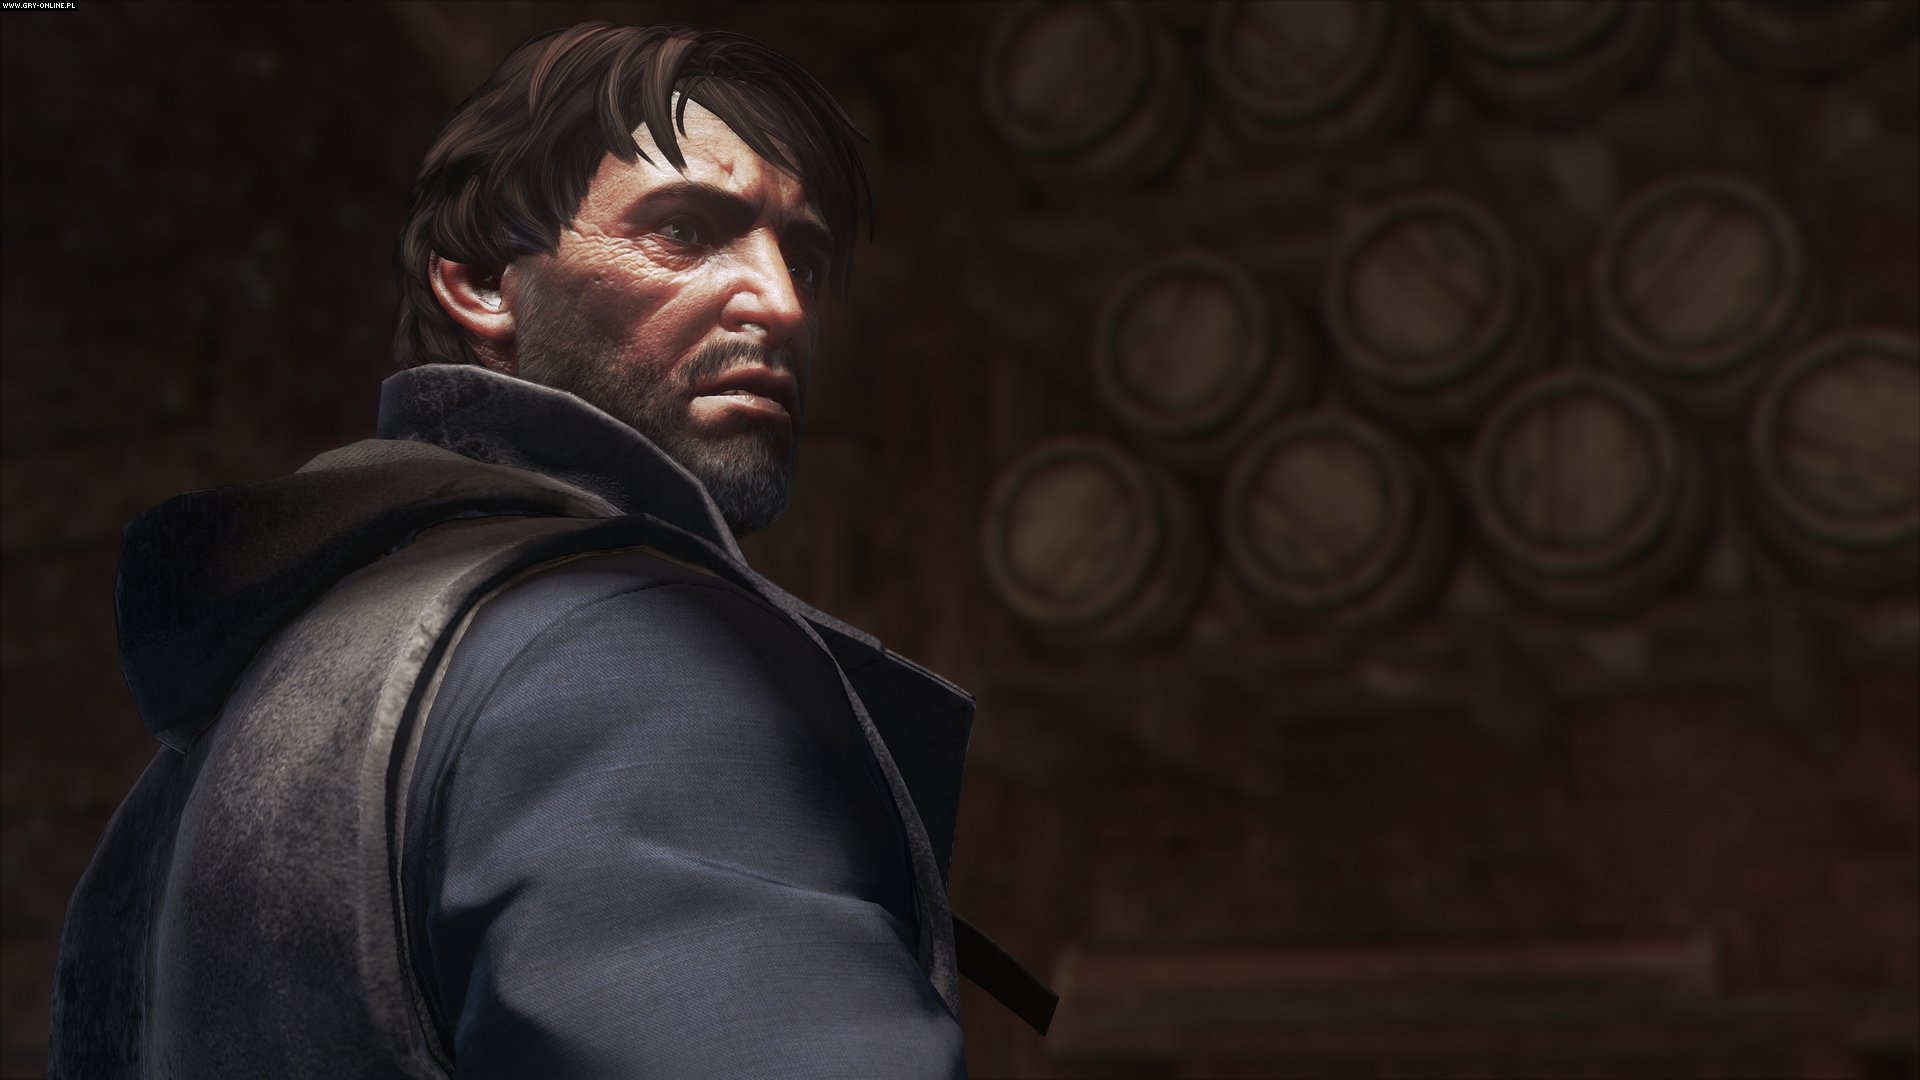 Dishonored 2 PC, PS4, XONE Games Image 20/55, Arkane Studios, Bethesda Softworks